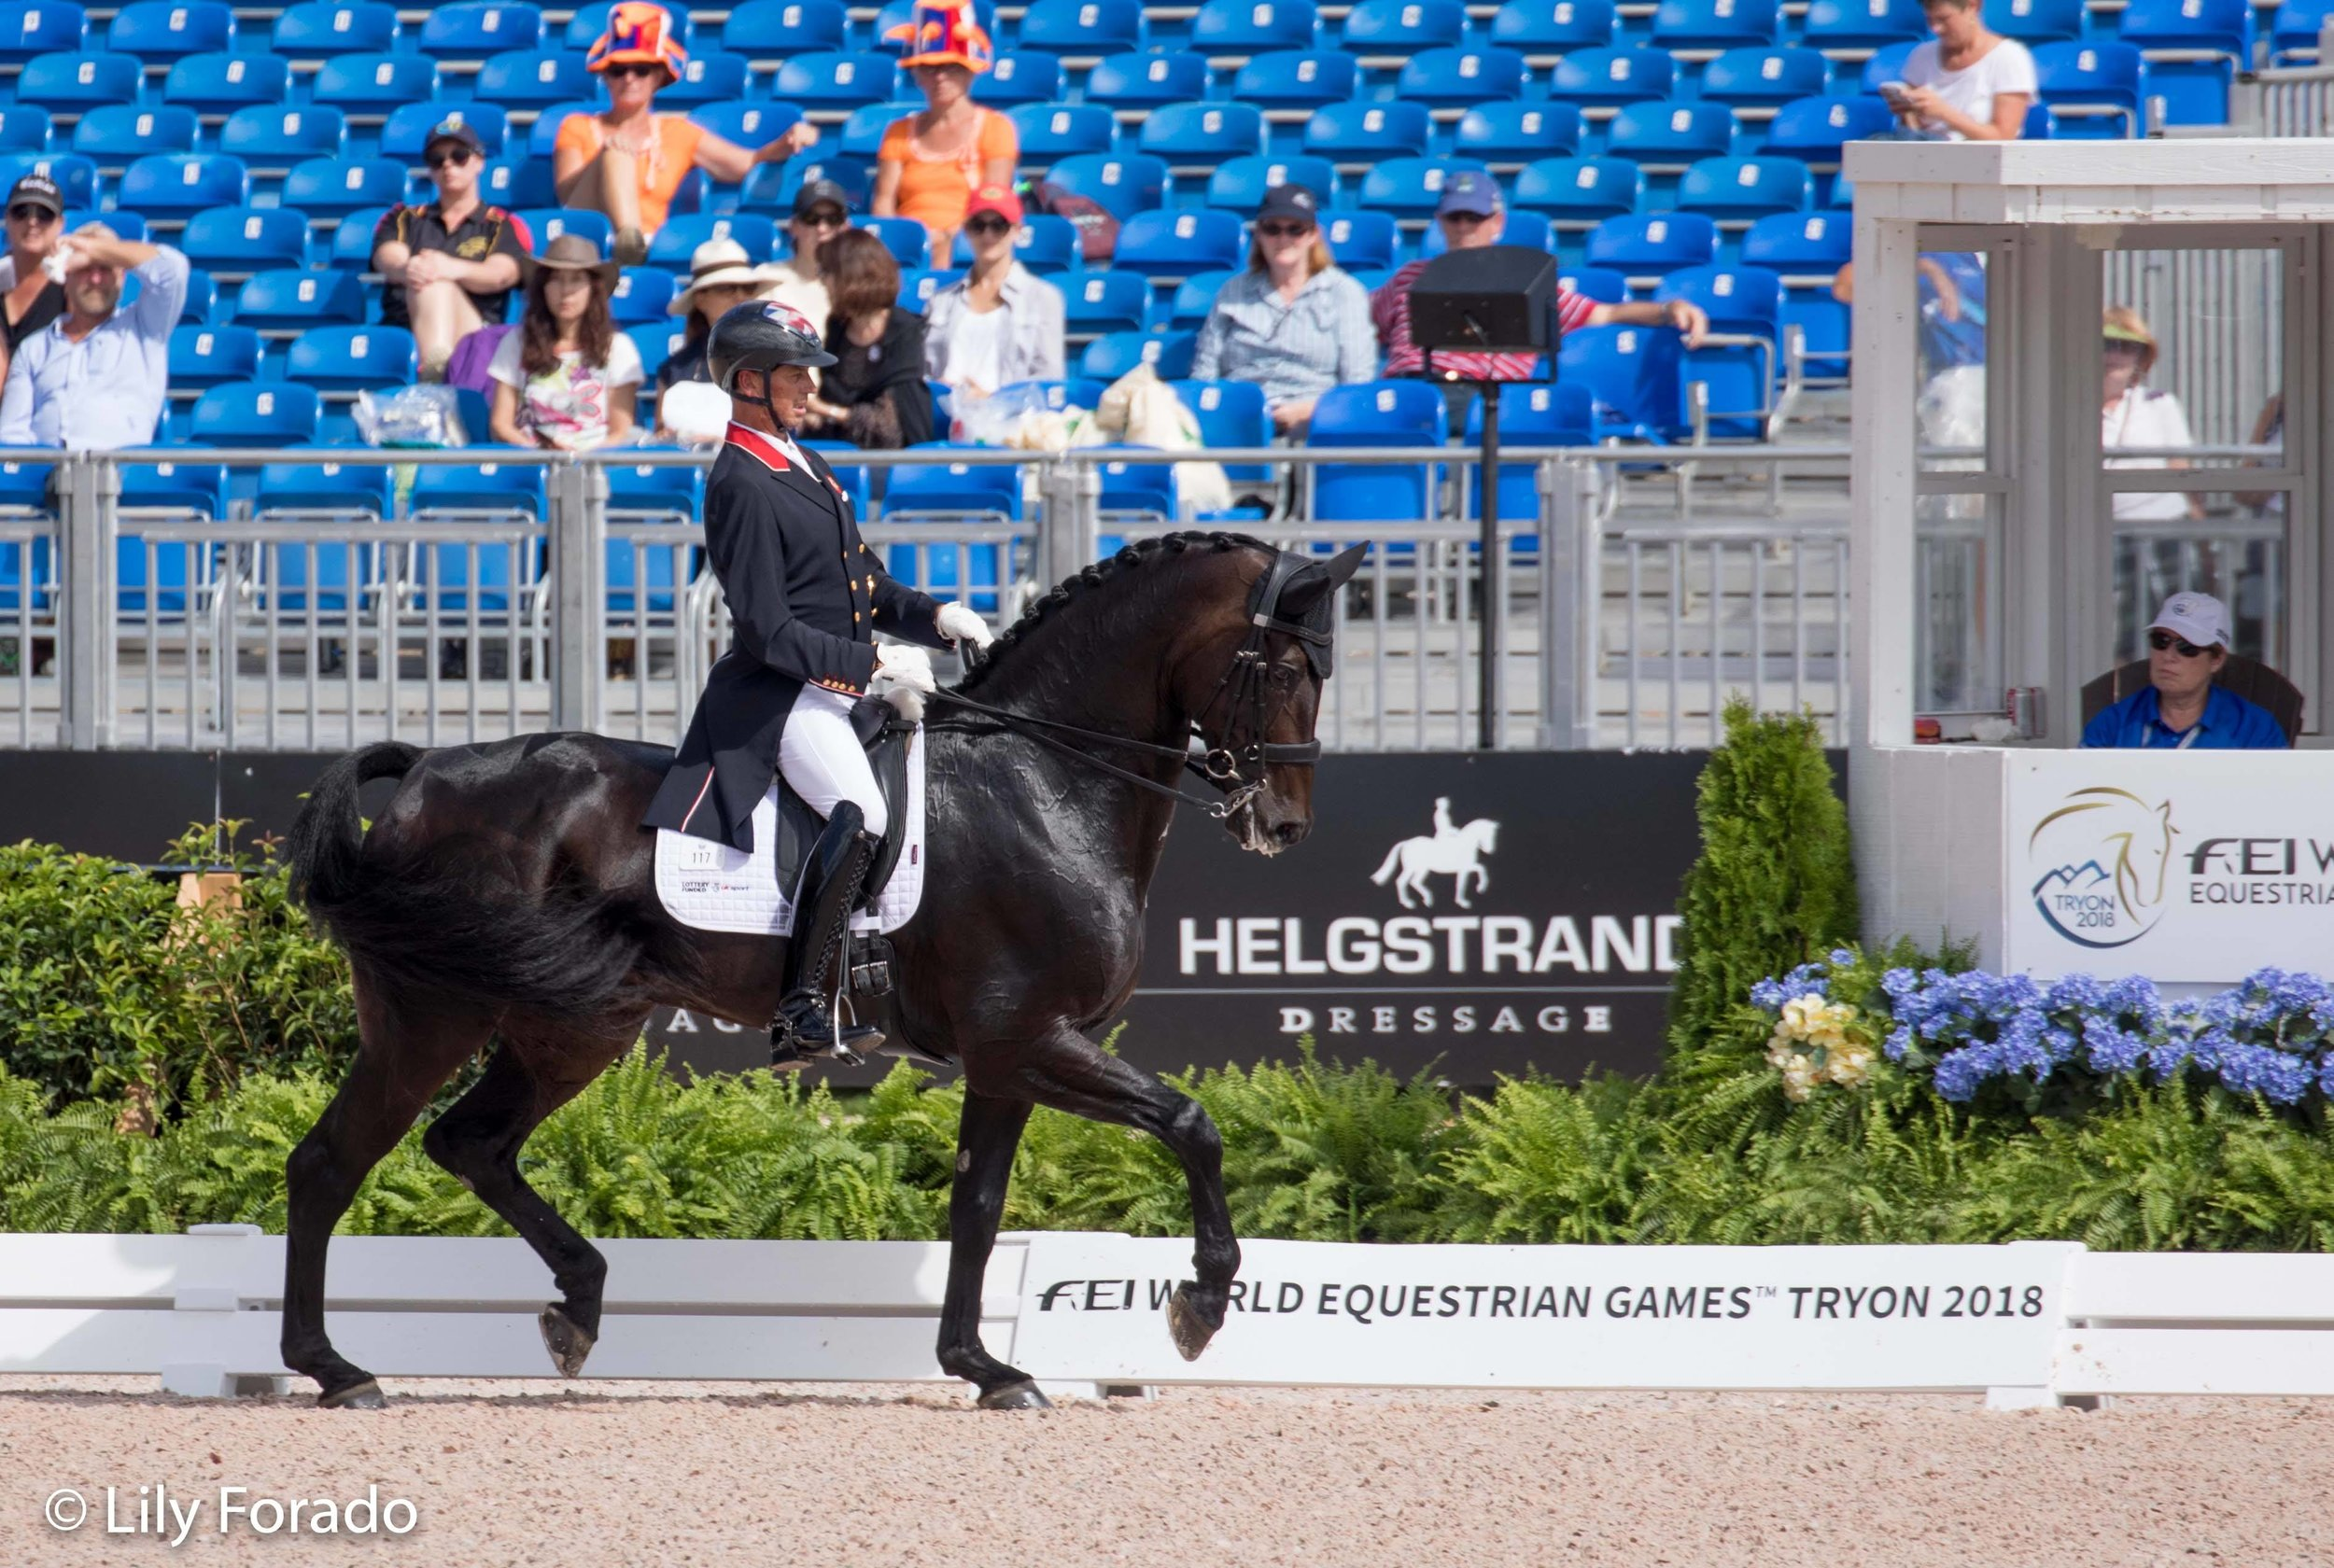 Hawtins Delicato and Carl Hester - photo credit: Lily Forado